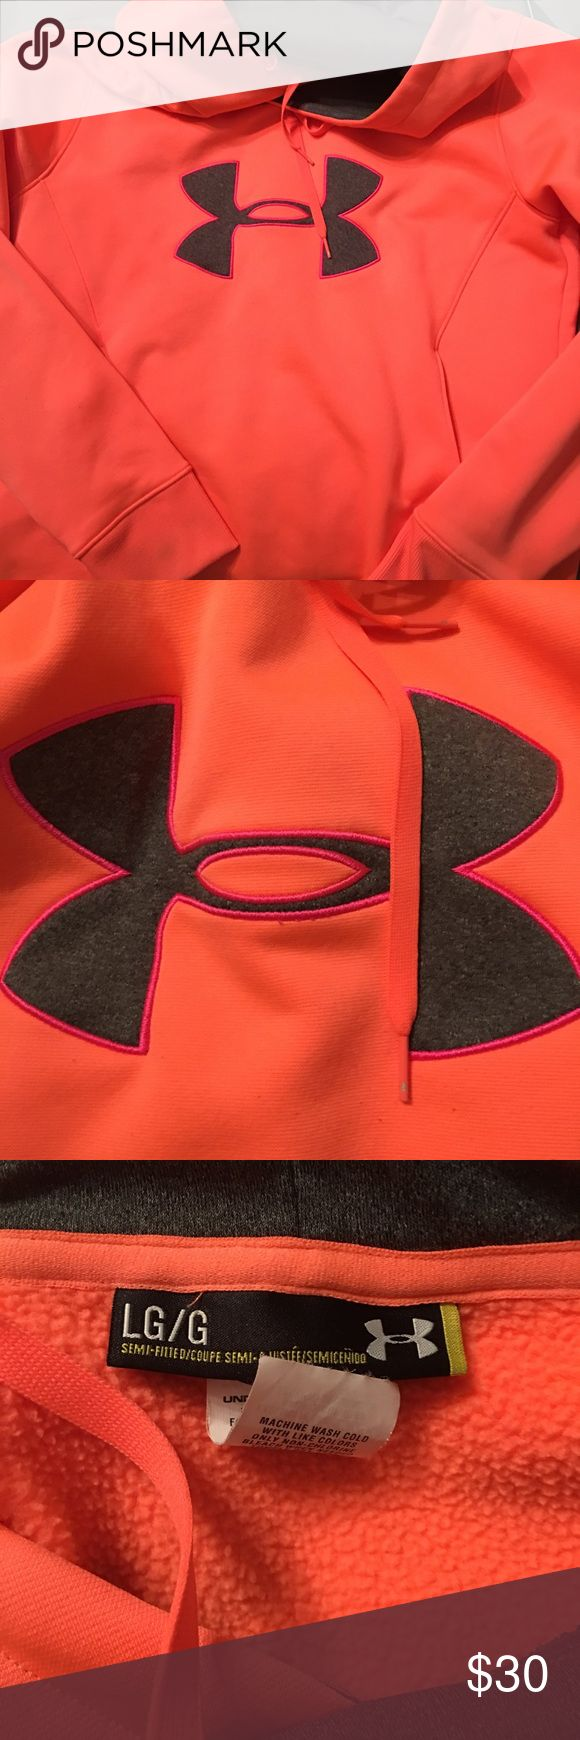 Under Armour hoodie Super cute Under Armour hoodies. Bright coral color with gray accents. Excellent condition. Under Armour Tops Sweatshirts & Hoodies